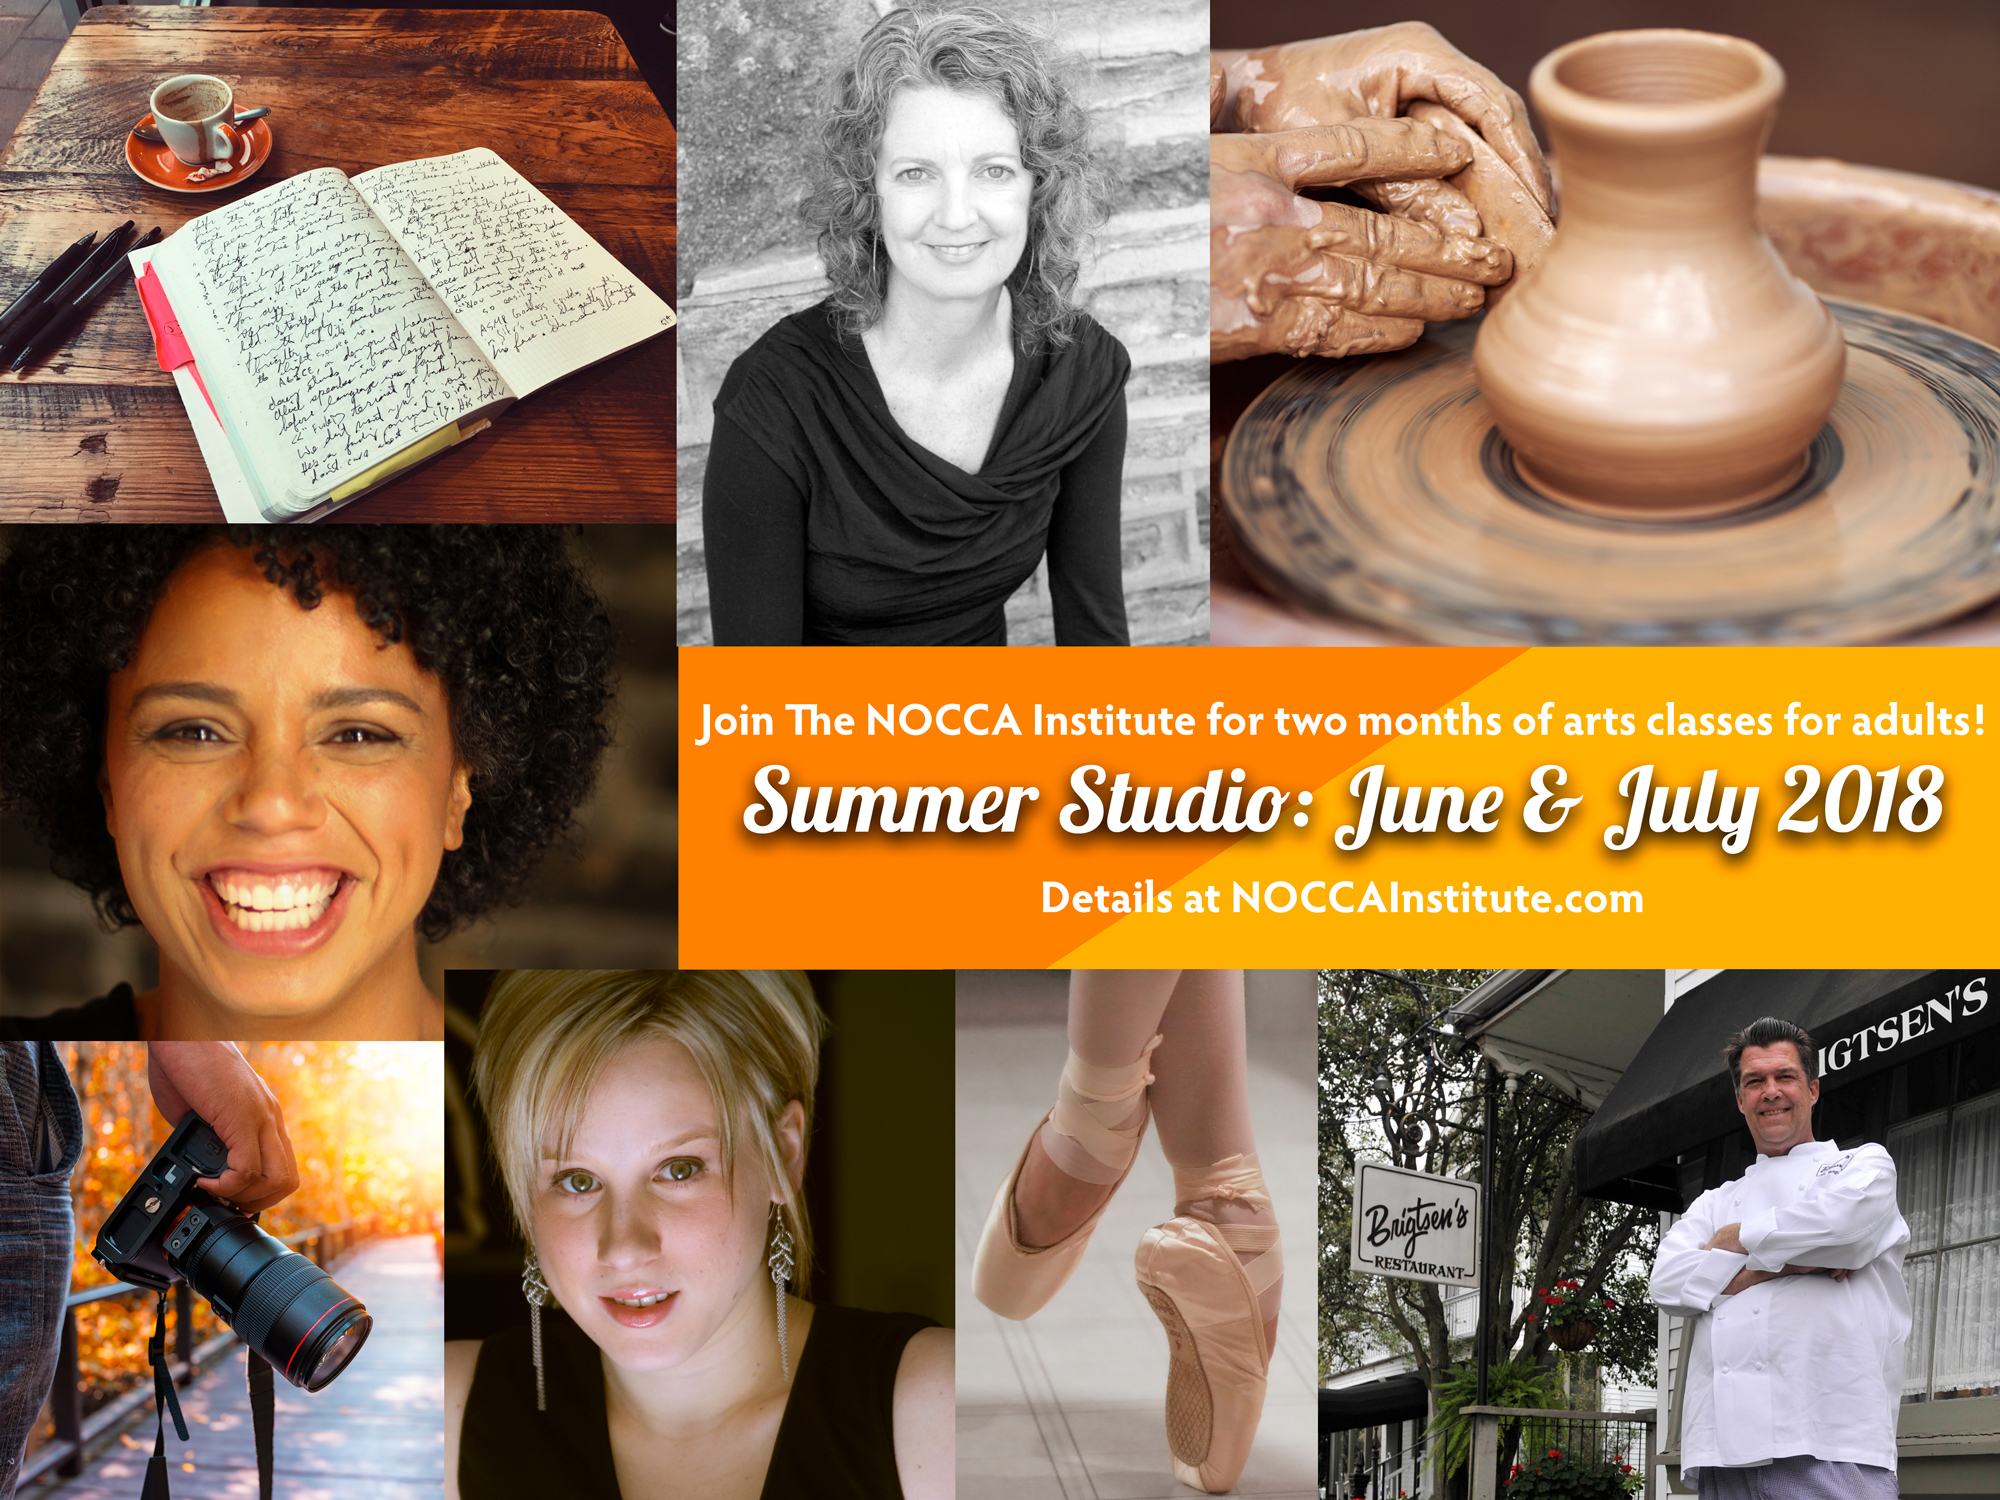 Join us for two months of arts classes for adults: June and July 2018